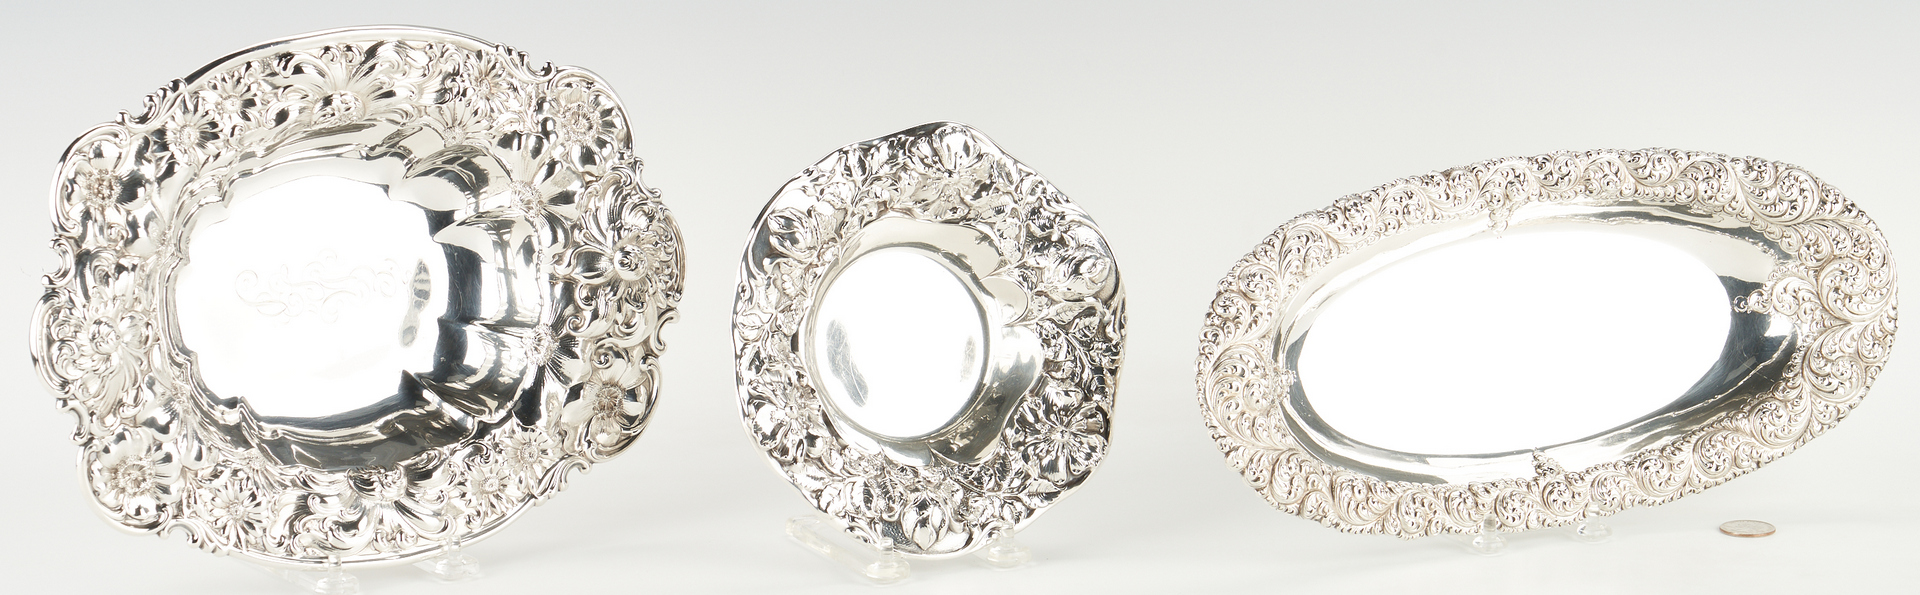 Lot 919: 3 Sterling Silver Trays w/ RepoussŽ Rims, Gorham & Whiting